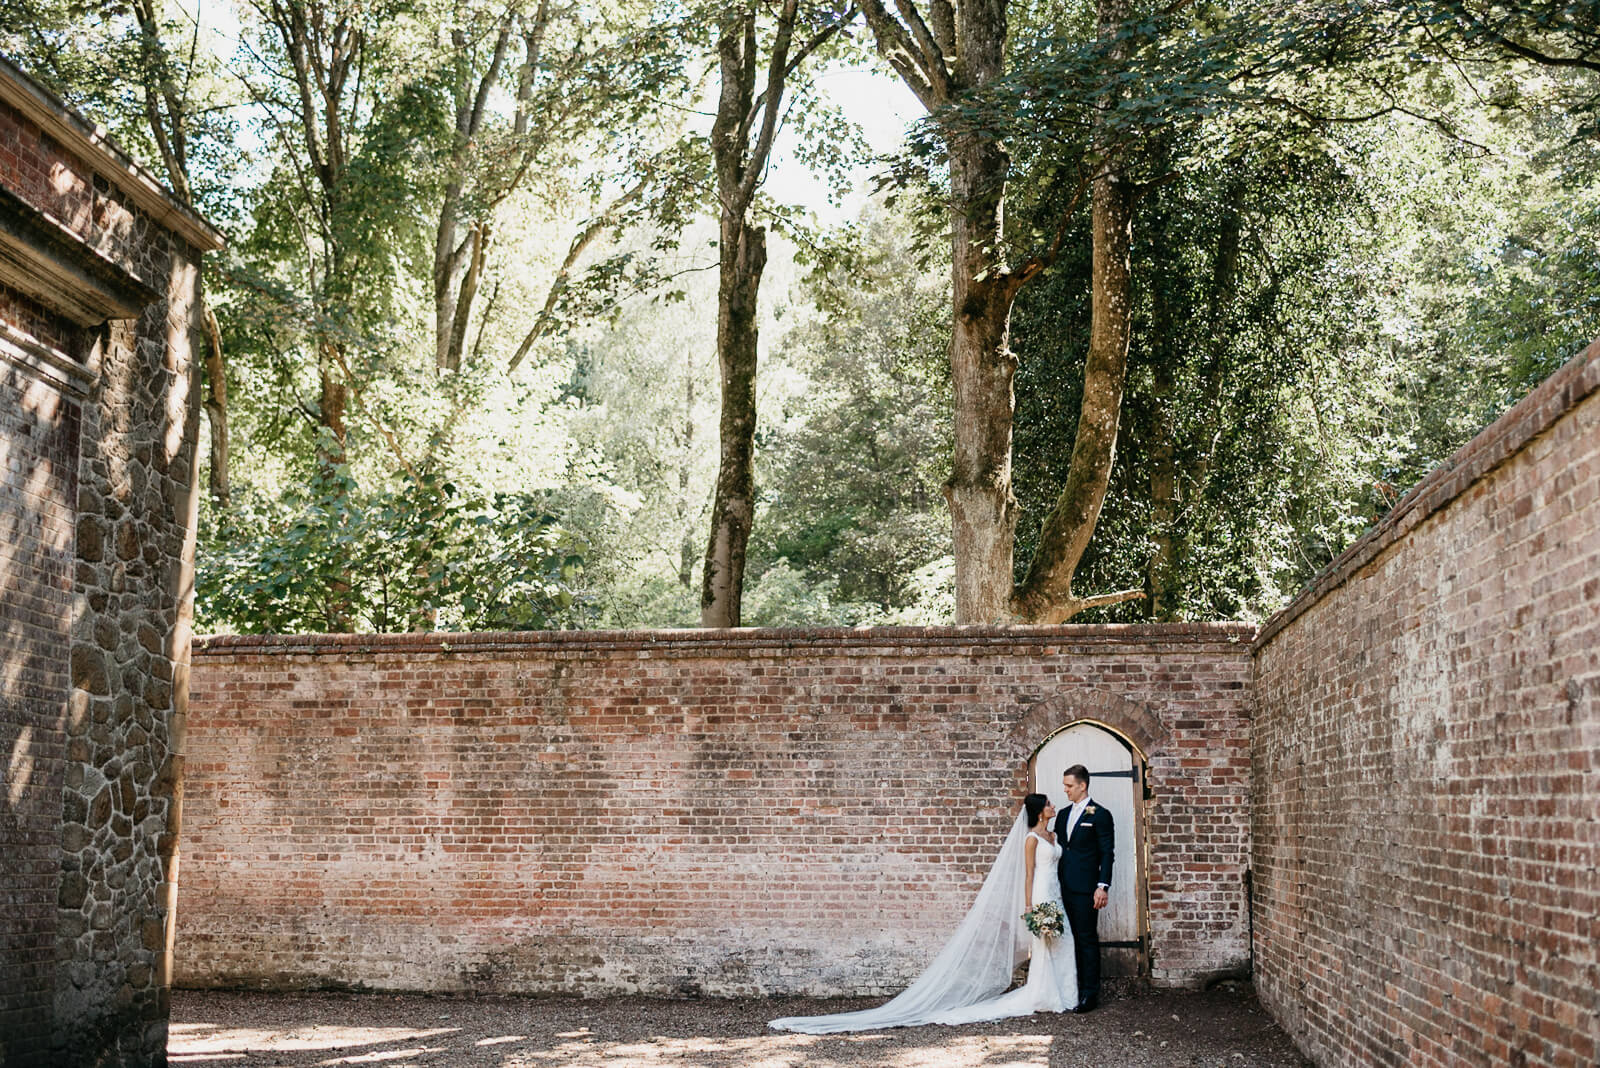 Stylish Bride and Groom during their wedding portraits at Wotton House